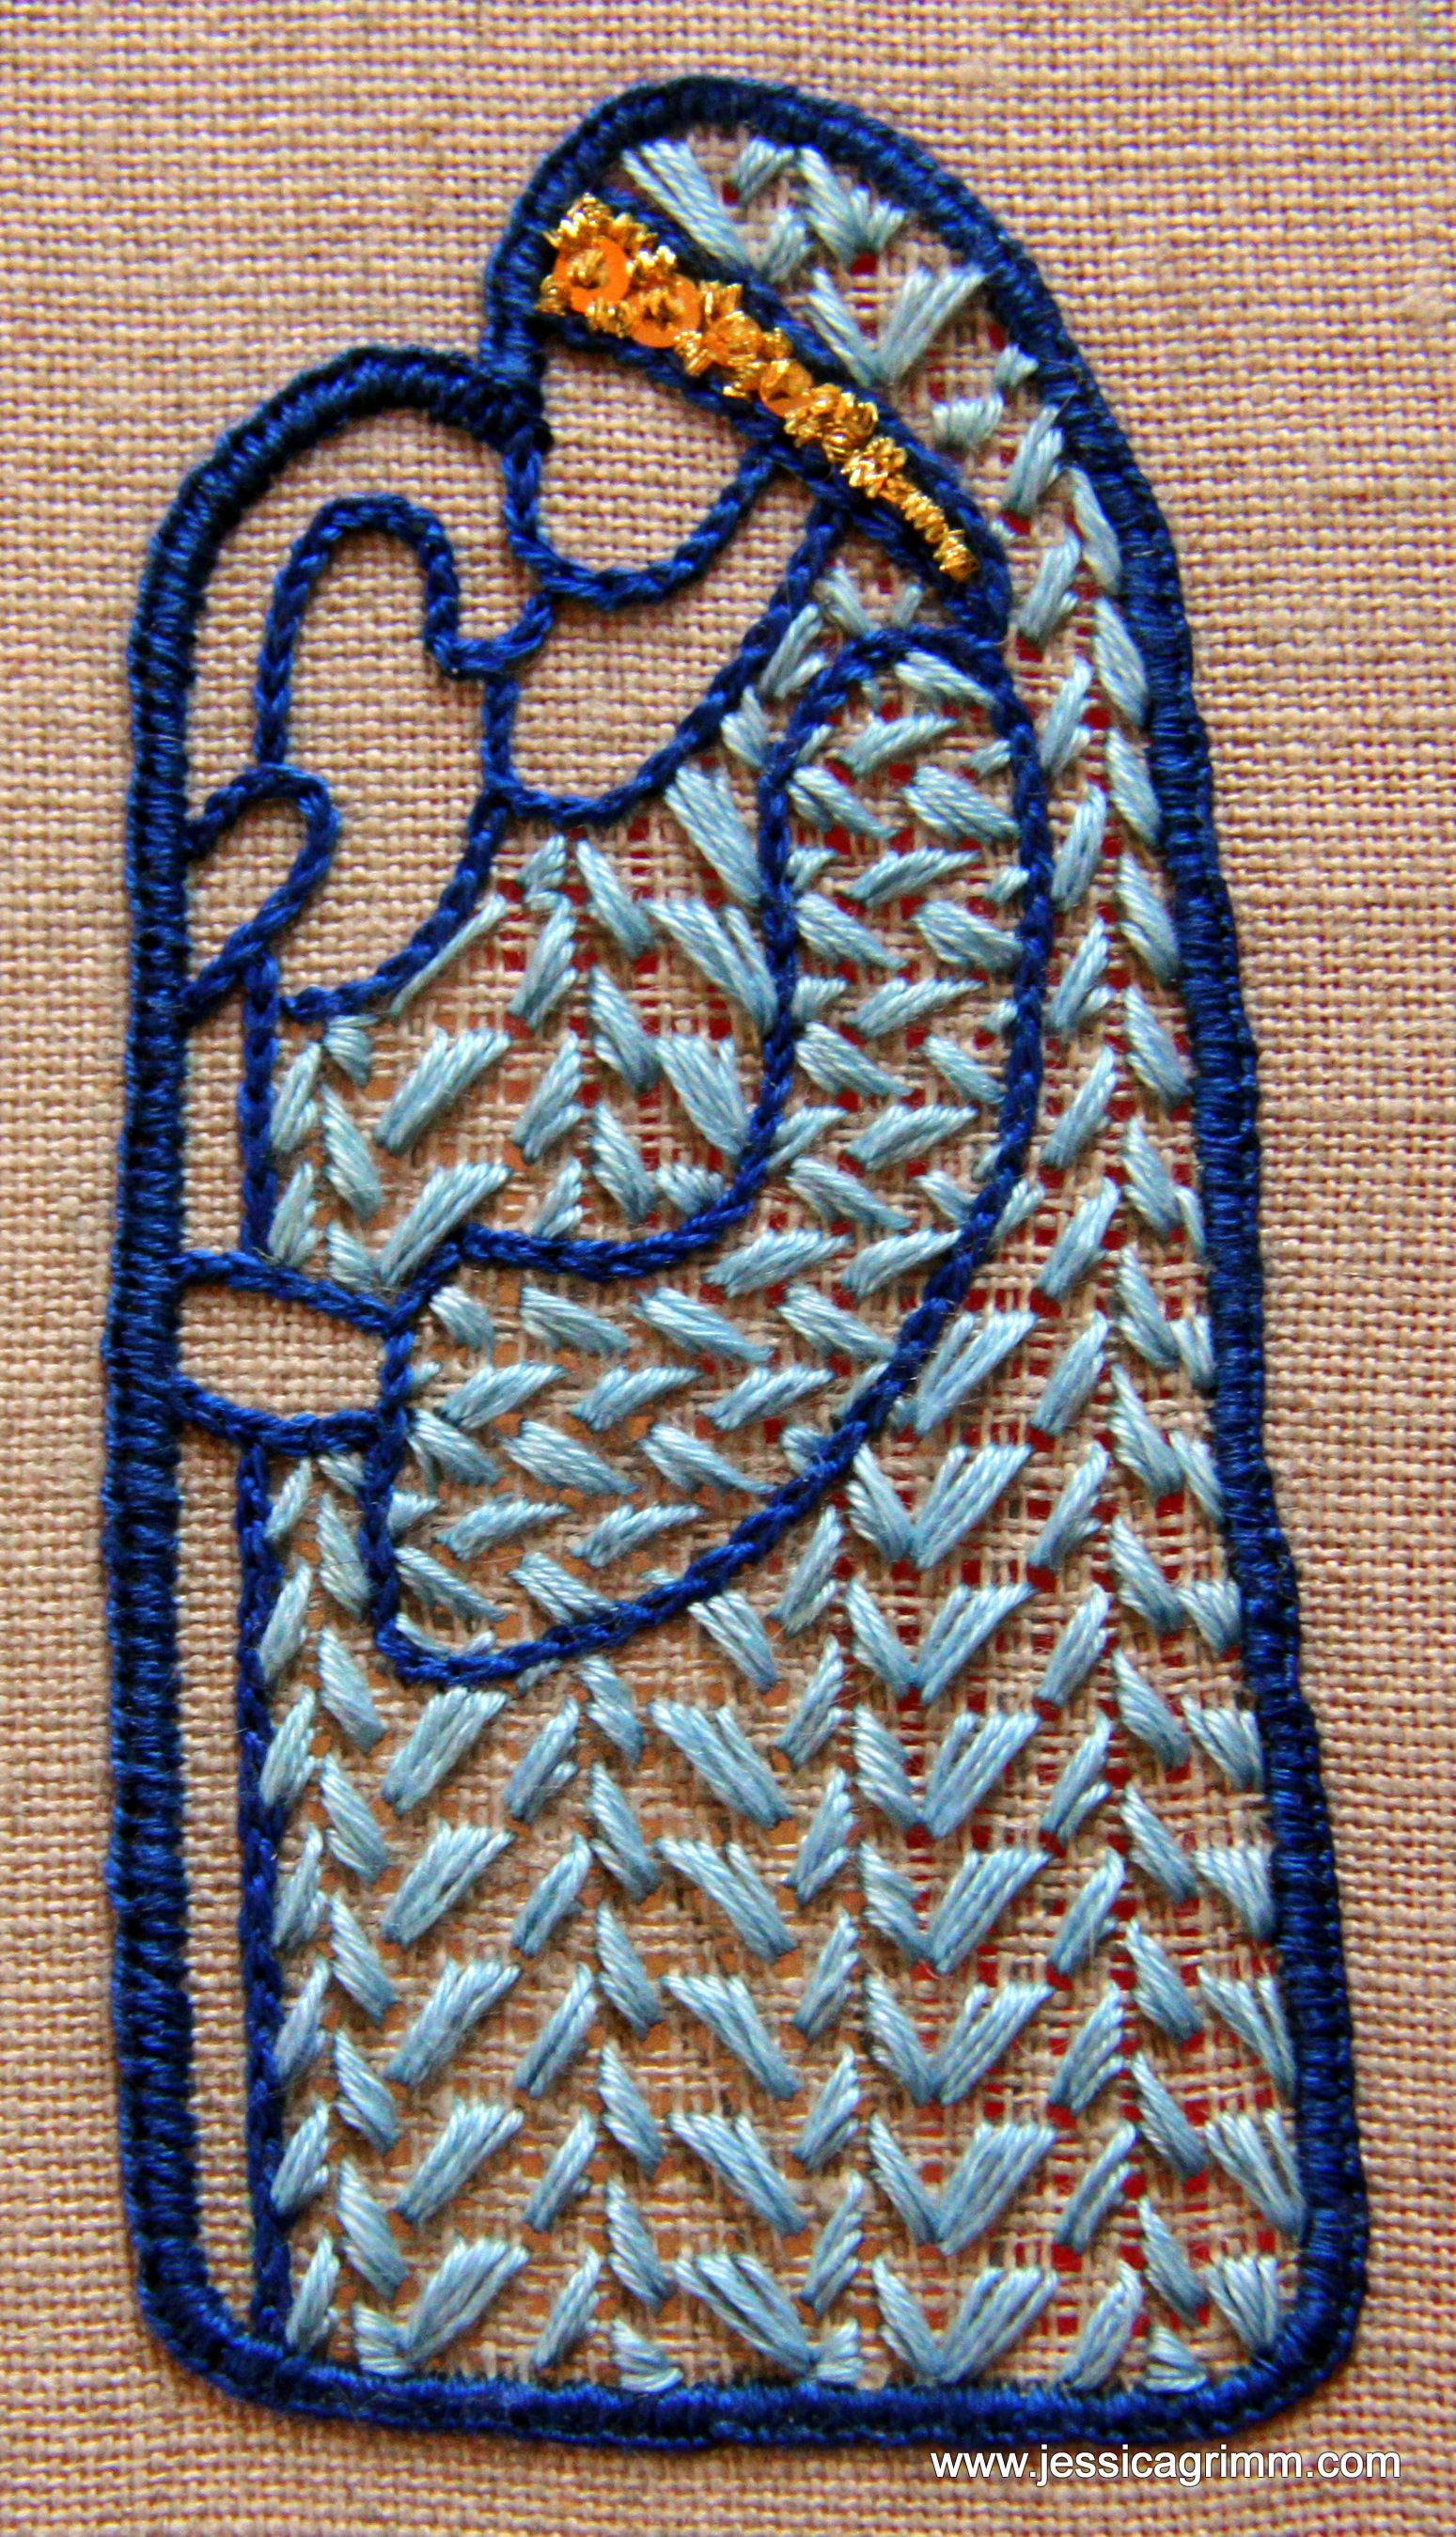 Shepherd Colourful Schwalm Embroidery With A Bit Of Goldwork On